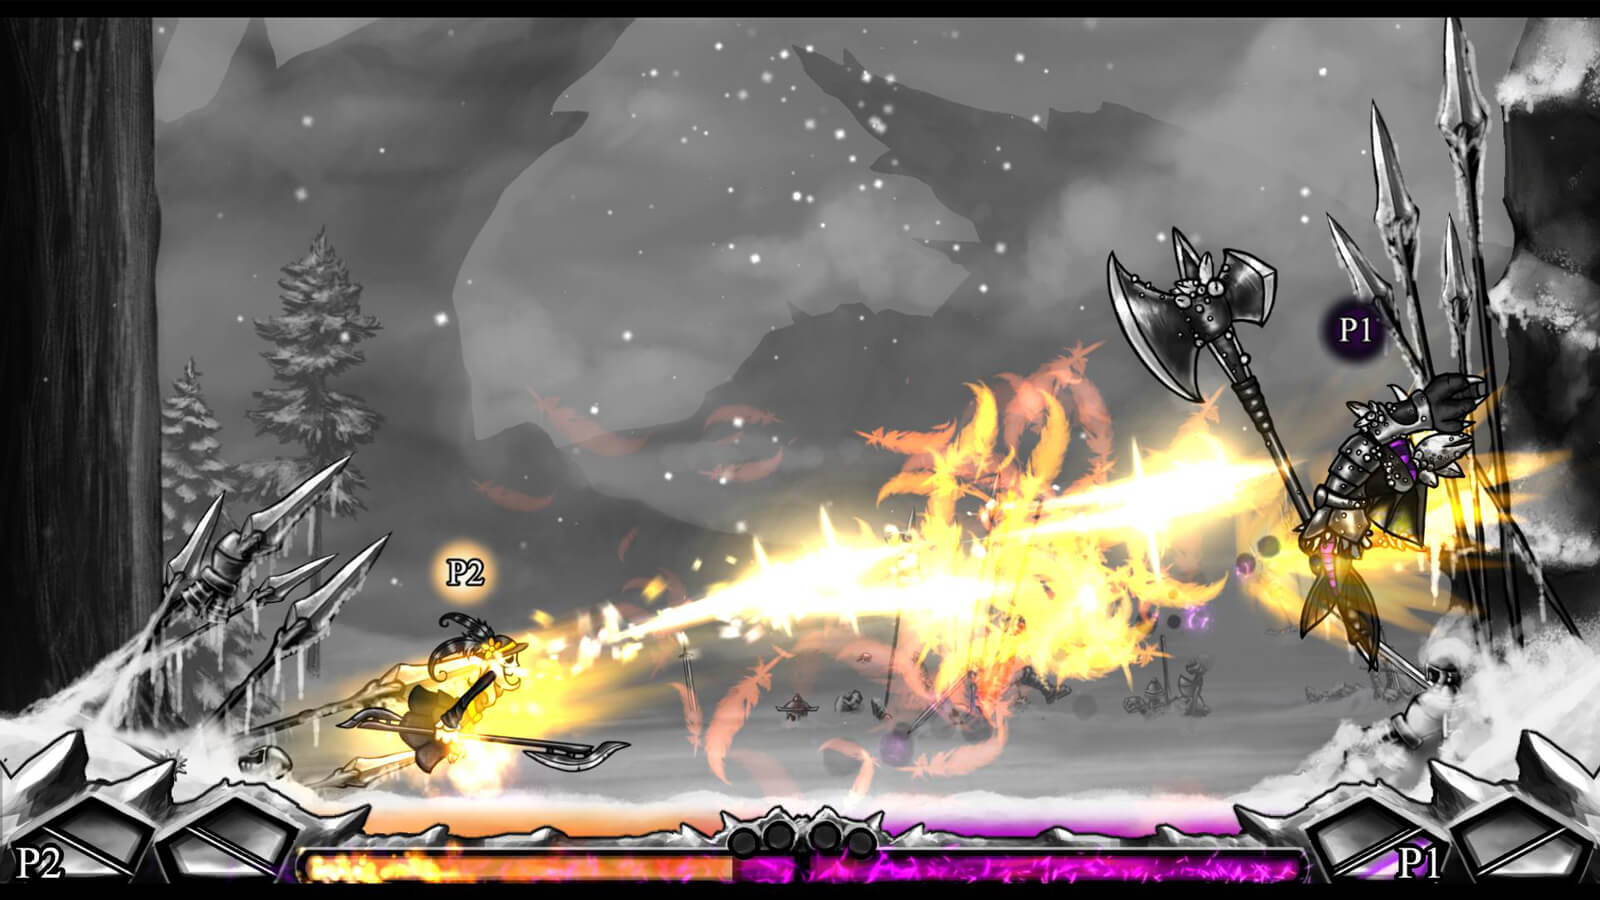 A fighter with a feathered cap attacks their opponent with an orange, feathery beam.